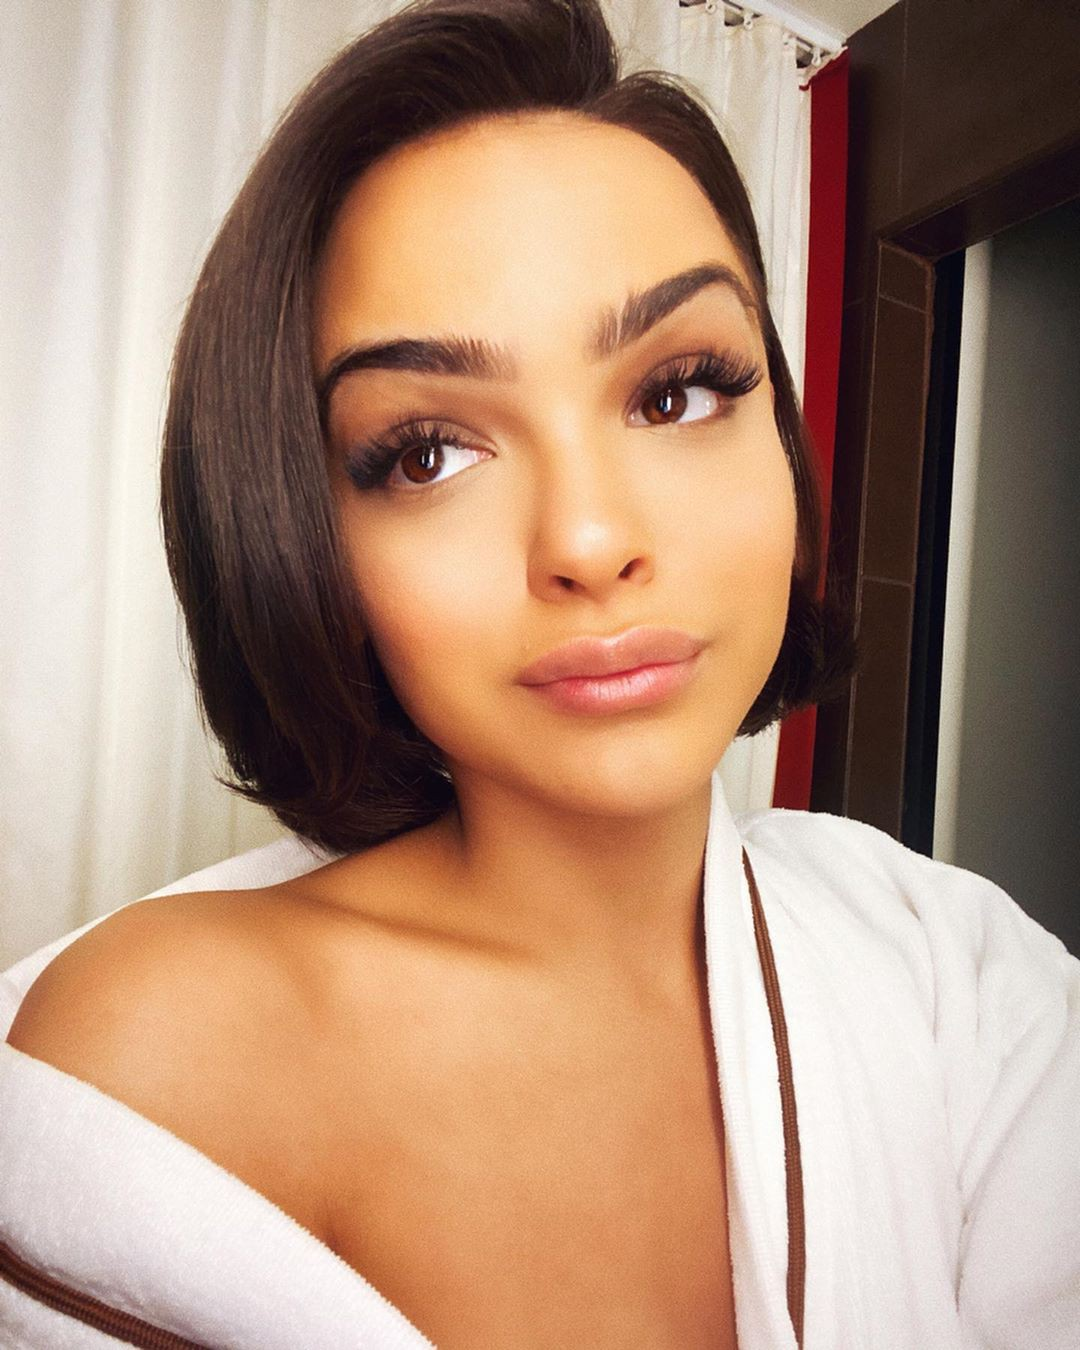 Lisa Ramos Cute Black Hairstyles, Girls With Cute Face, Natural Lipstick